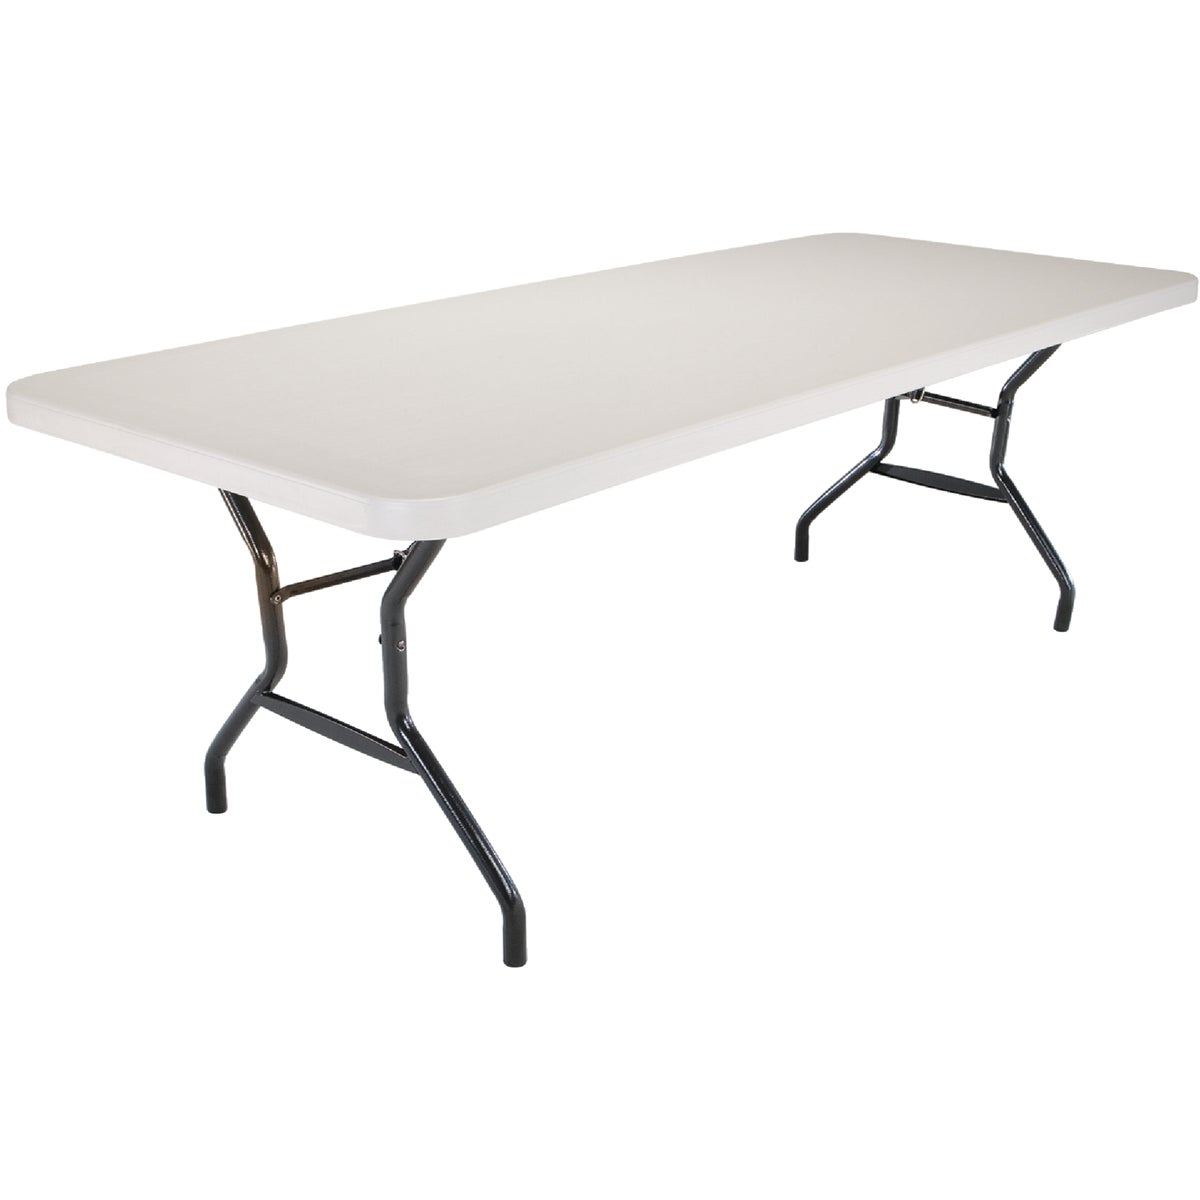 WHT 8' FOLDING TABLE - 2980 by Lifetime Prod Inc